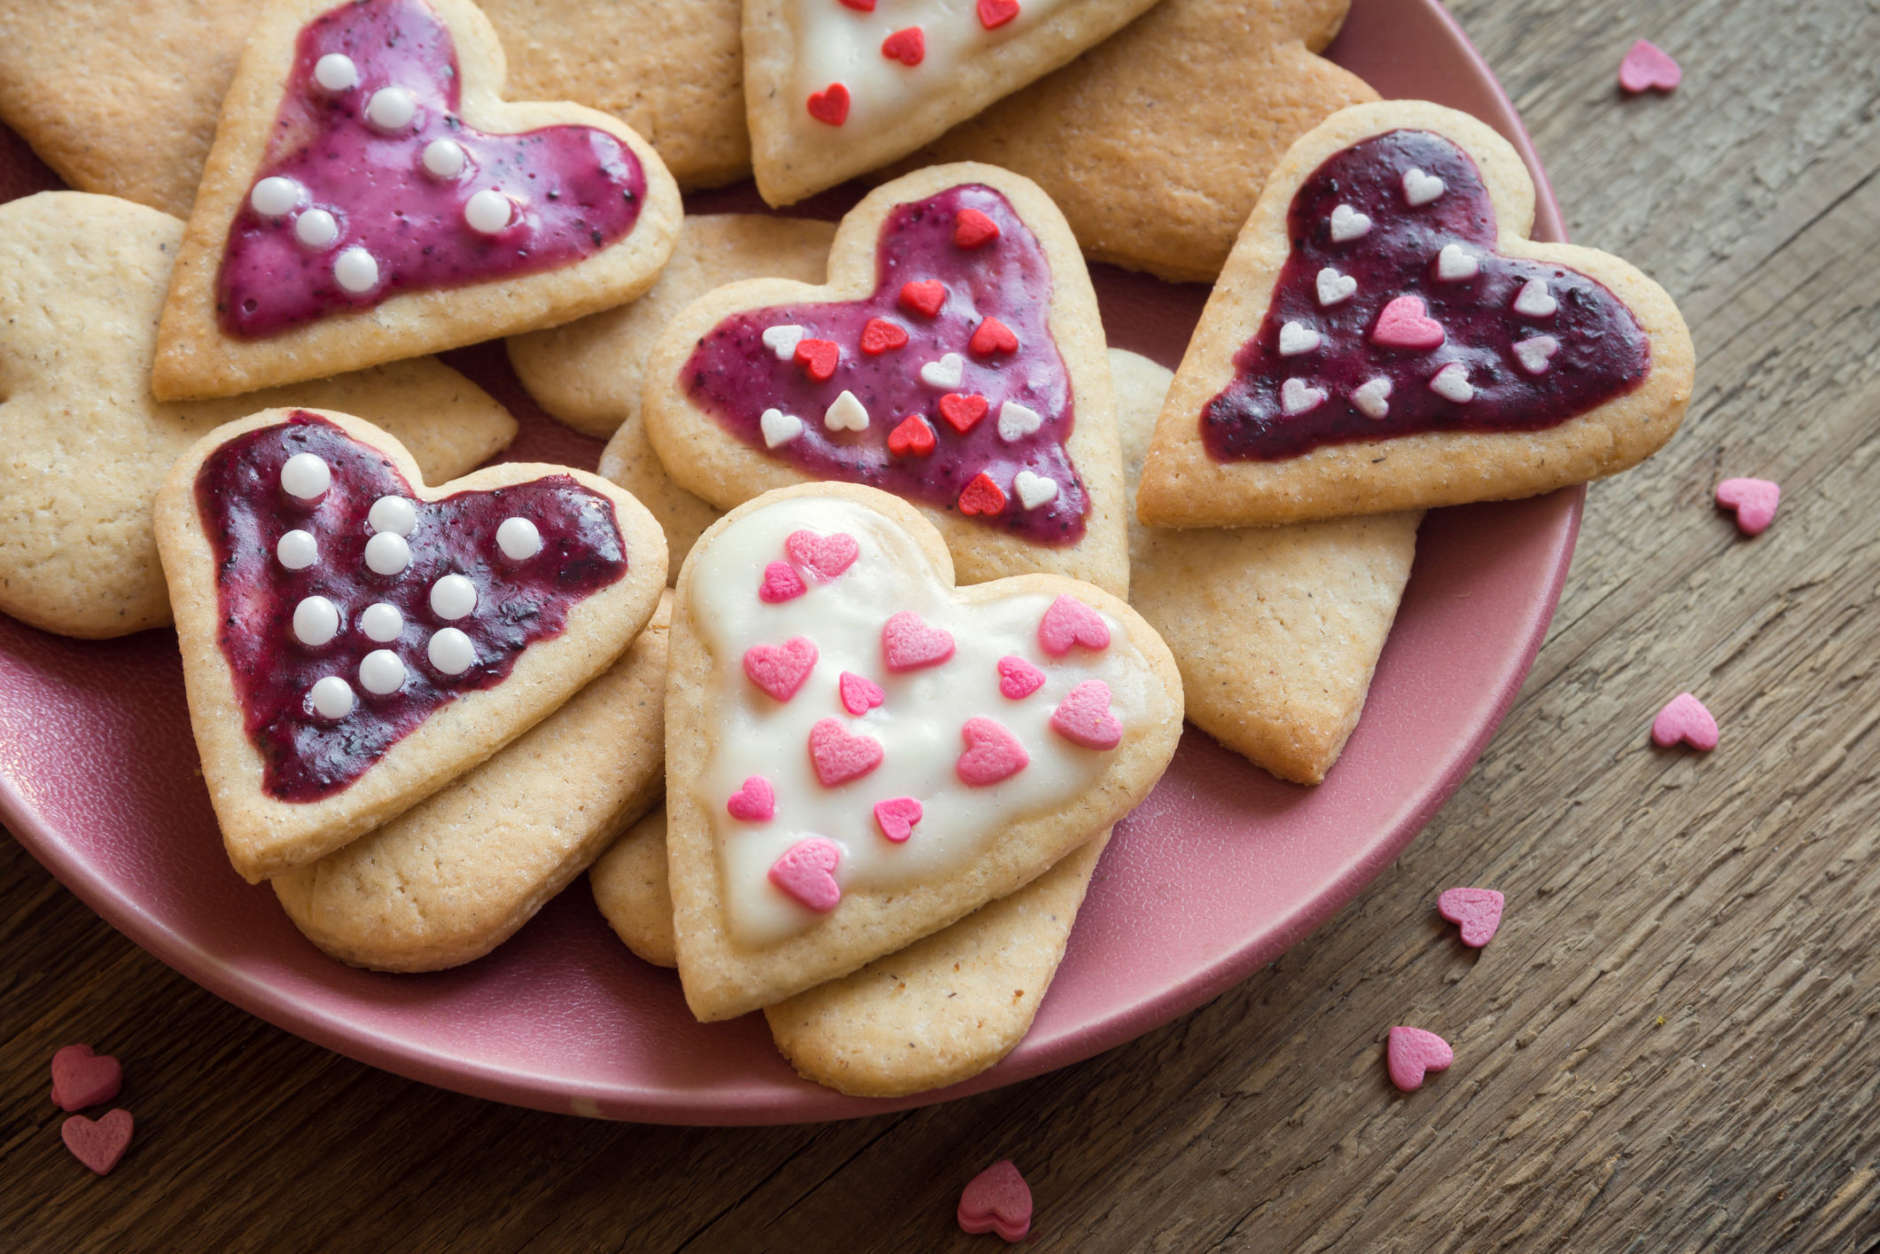 Sure, chocolates are delicious and cards are nice, but nothing beats quality time with the ones you love. (Thinkstock)